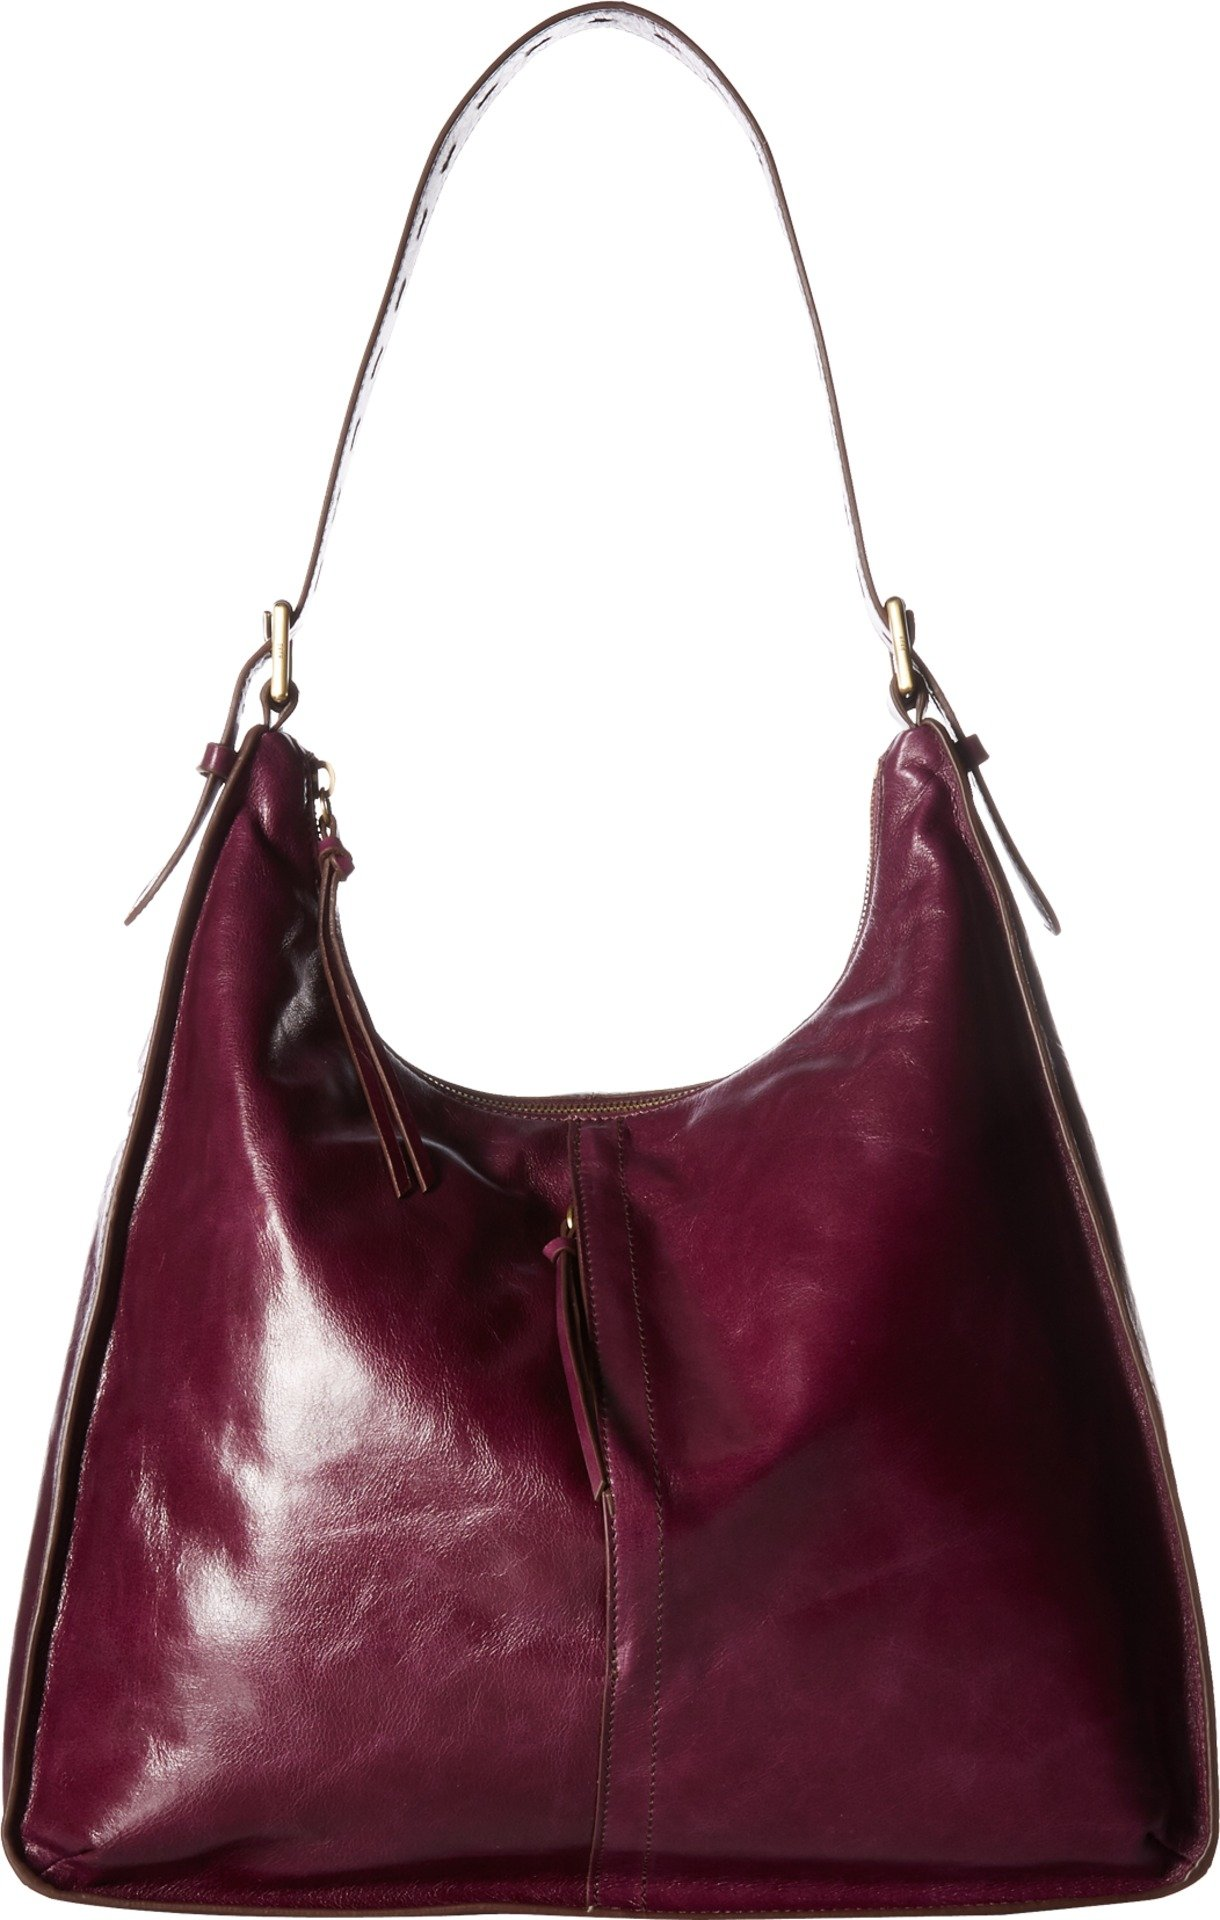 Hobo Women's Marley Eggplant One Size by HOBO